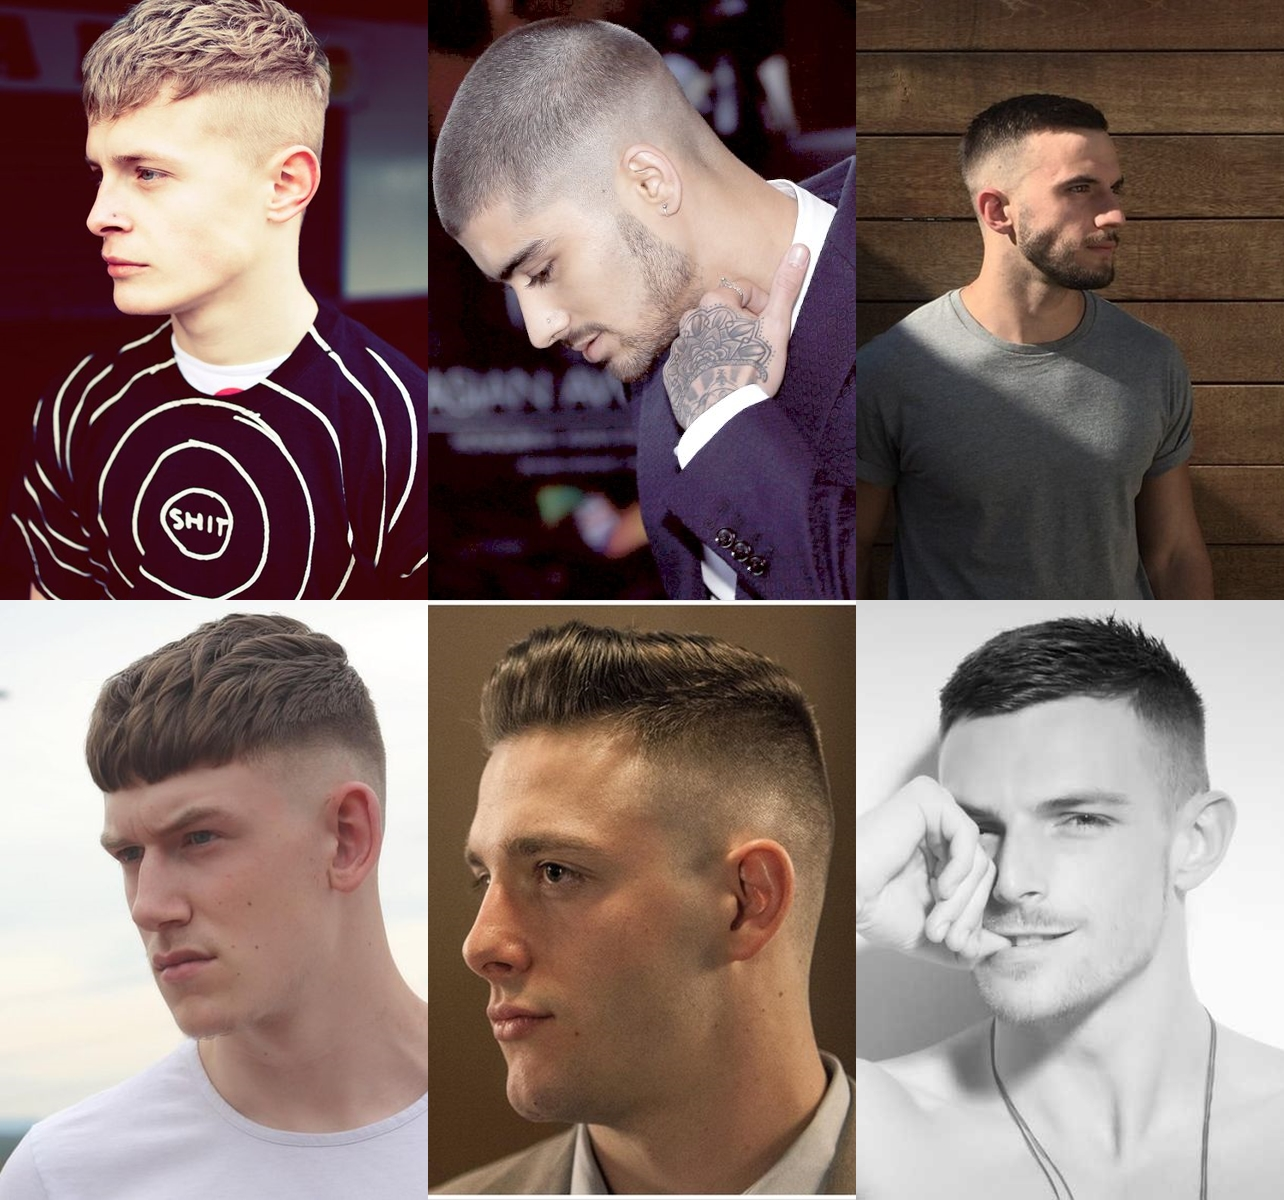 corte militar, haircut military for men, hairstyle for men, penteado masculino, corte de cabelo masculino, cortes 2017, penteados 2017, alex cursino, moda sem censura, menswear, blogger, 3